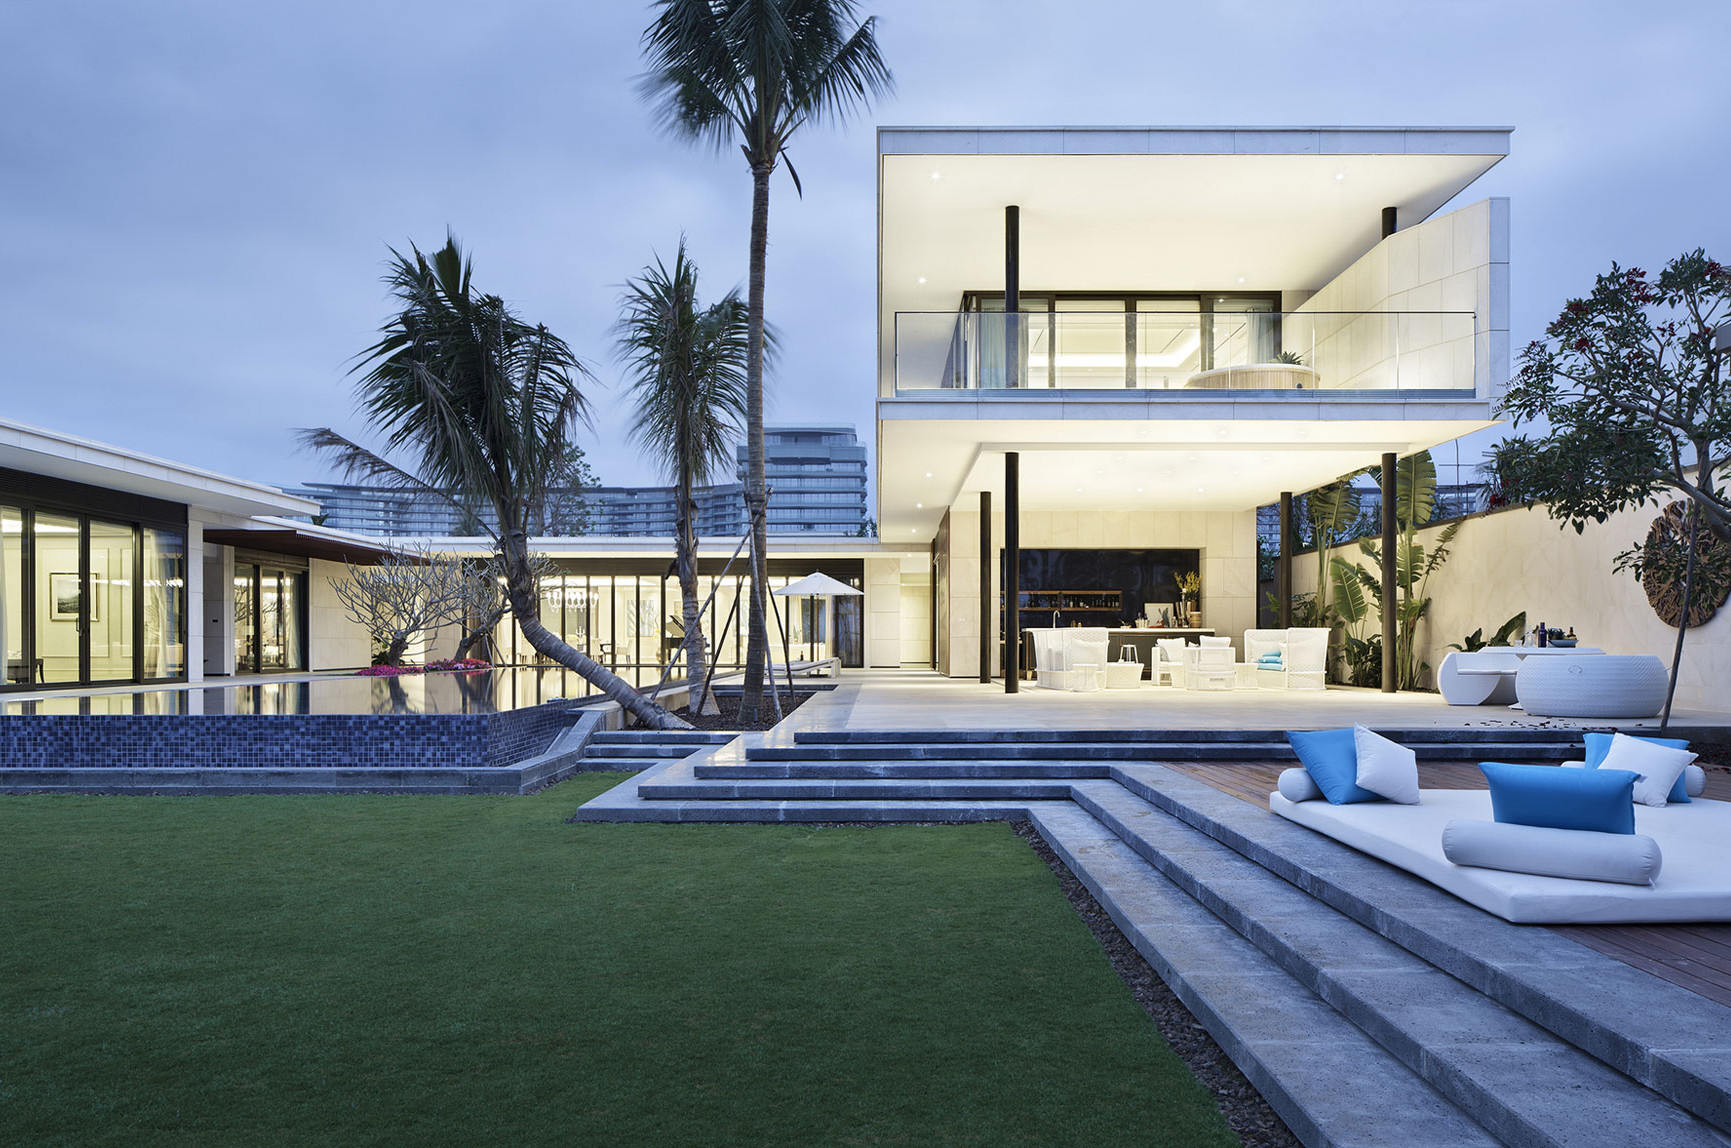 Amazing Villa Complex in Hainan, China